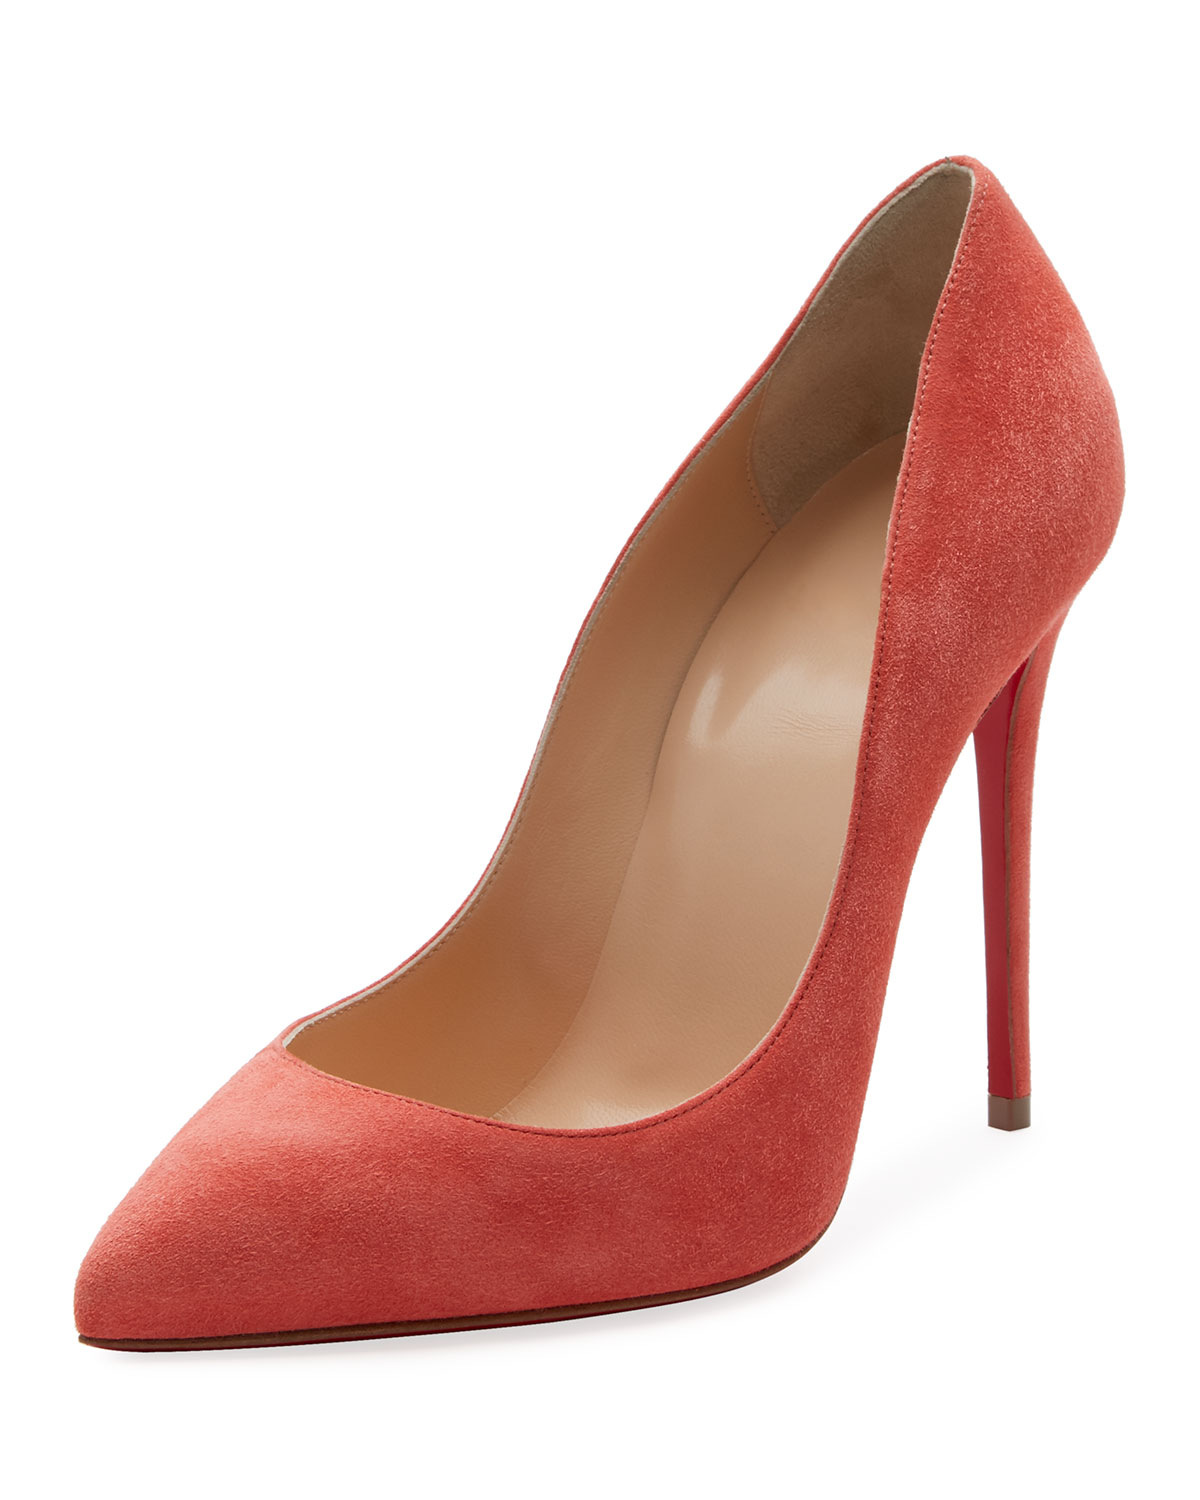 7936d16d60b4 Christian Louboutin Pigalle Follies Suede 100mm Red Sole Pump ...